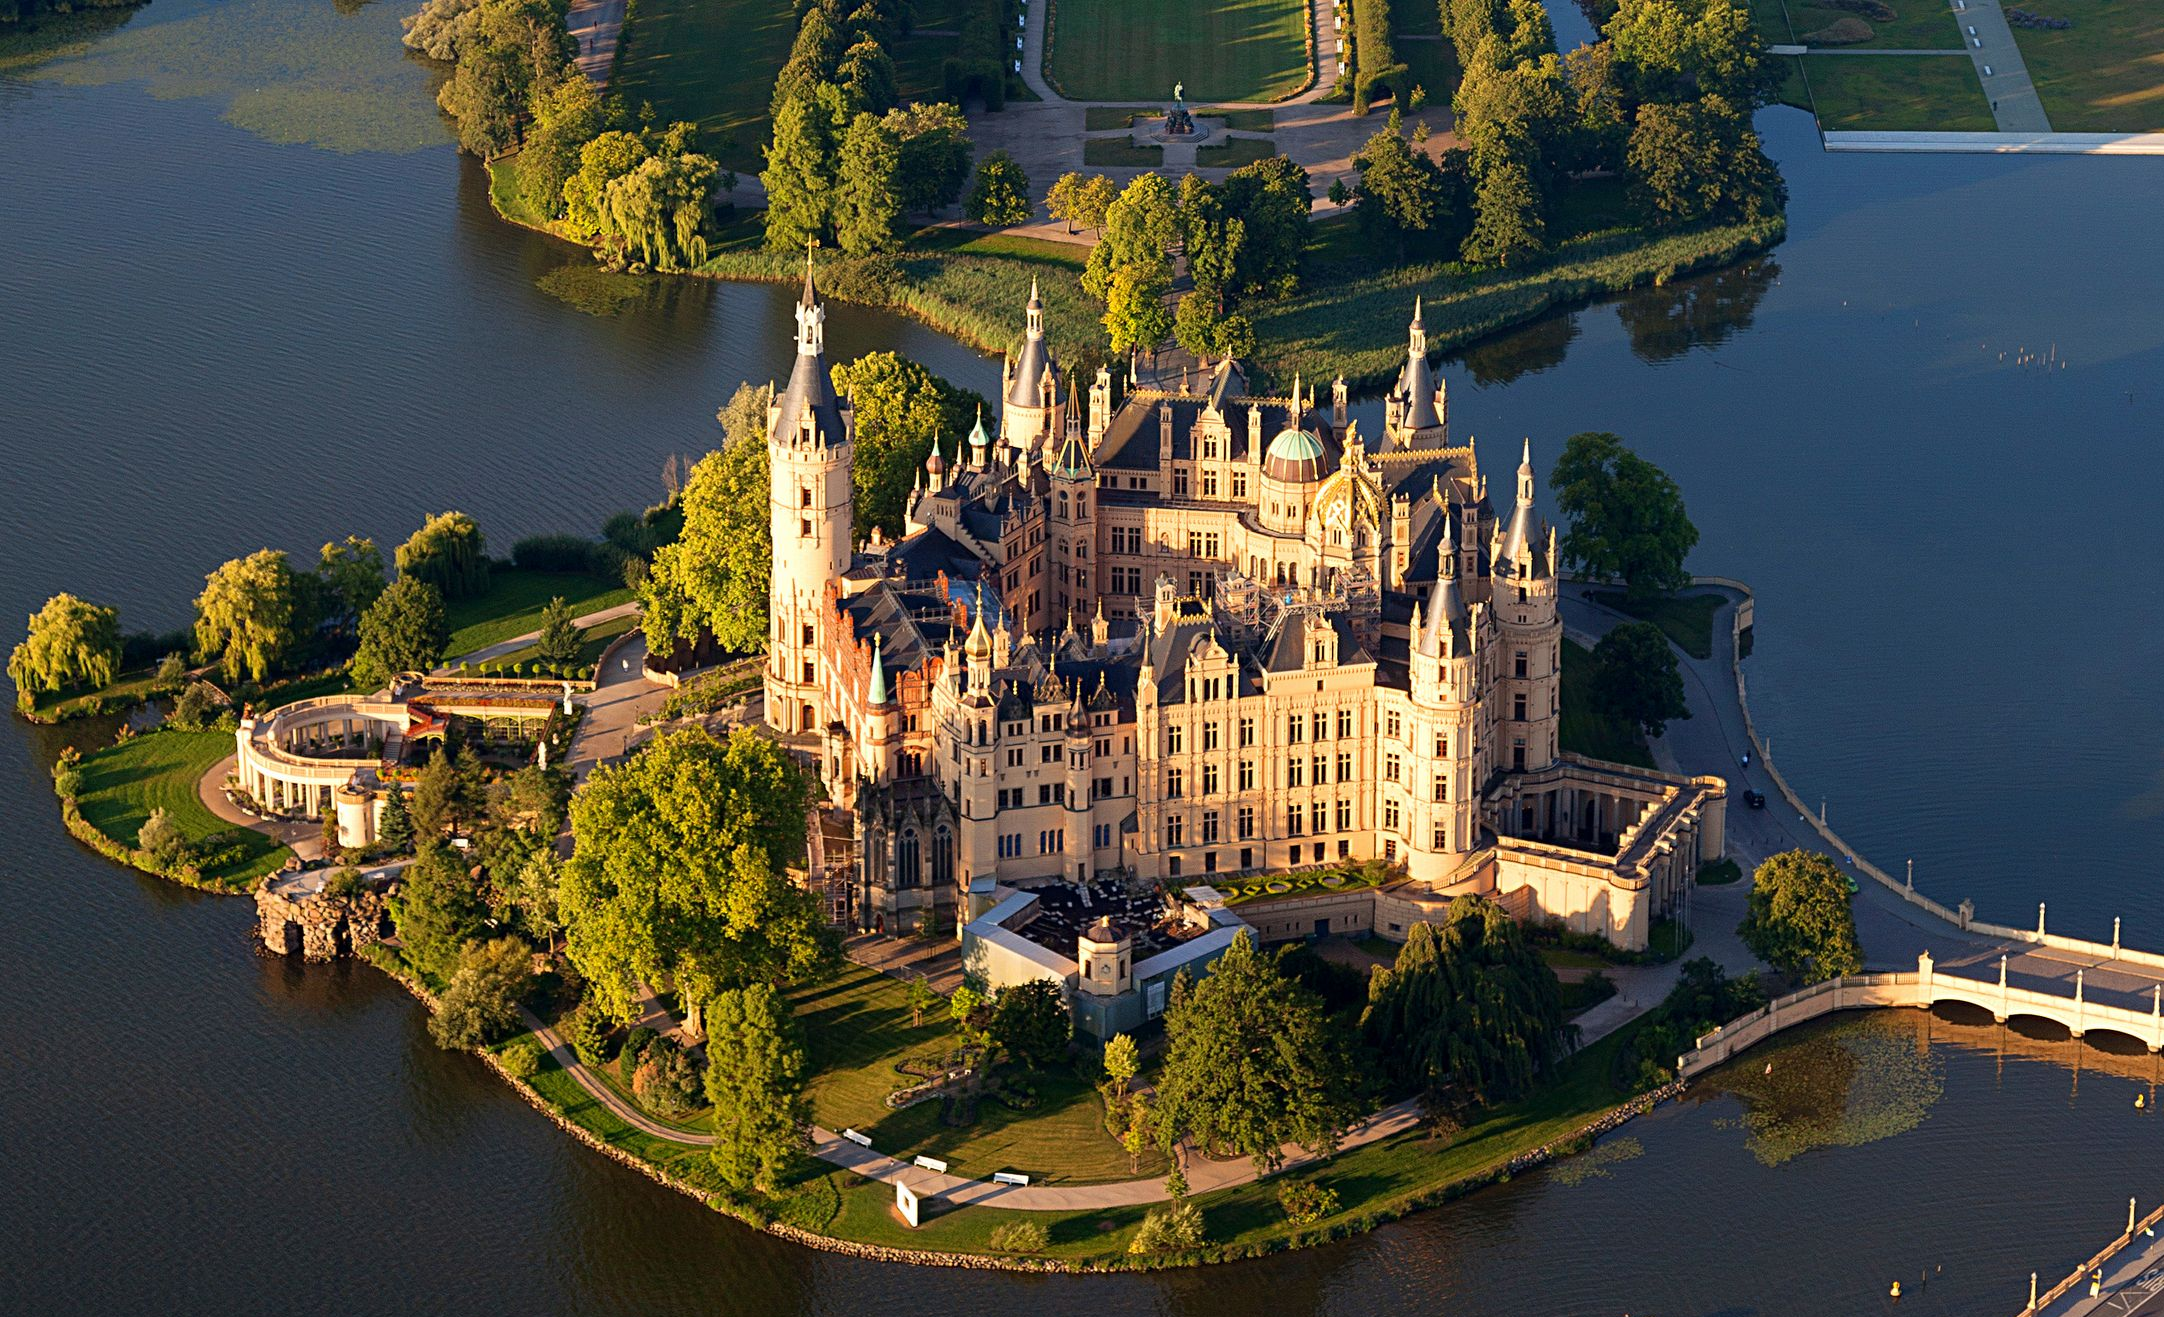 20 Buildings in Europe Every Architect must visit - Schwerin Palace, Schwerin, Germany